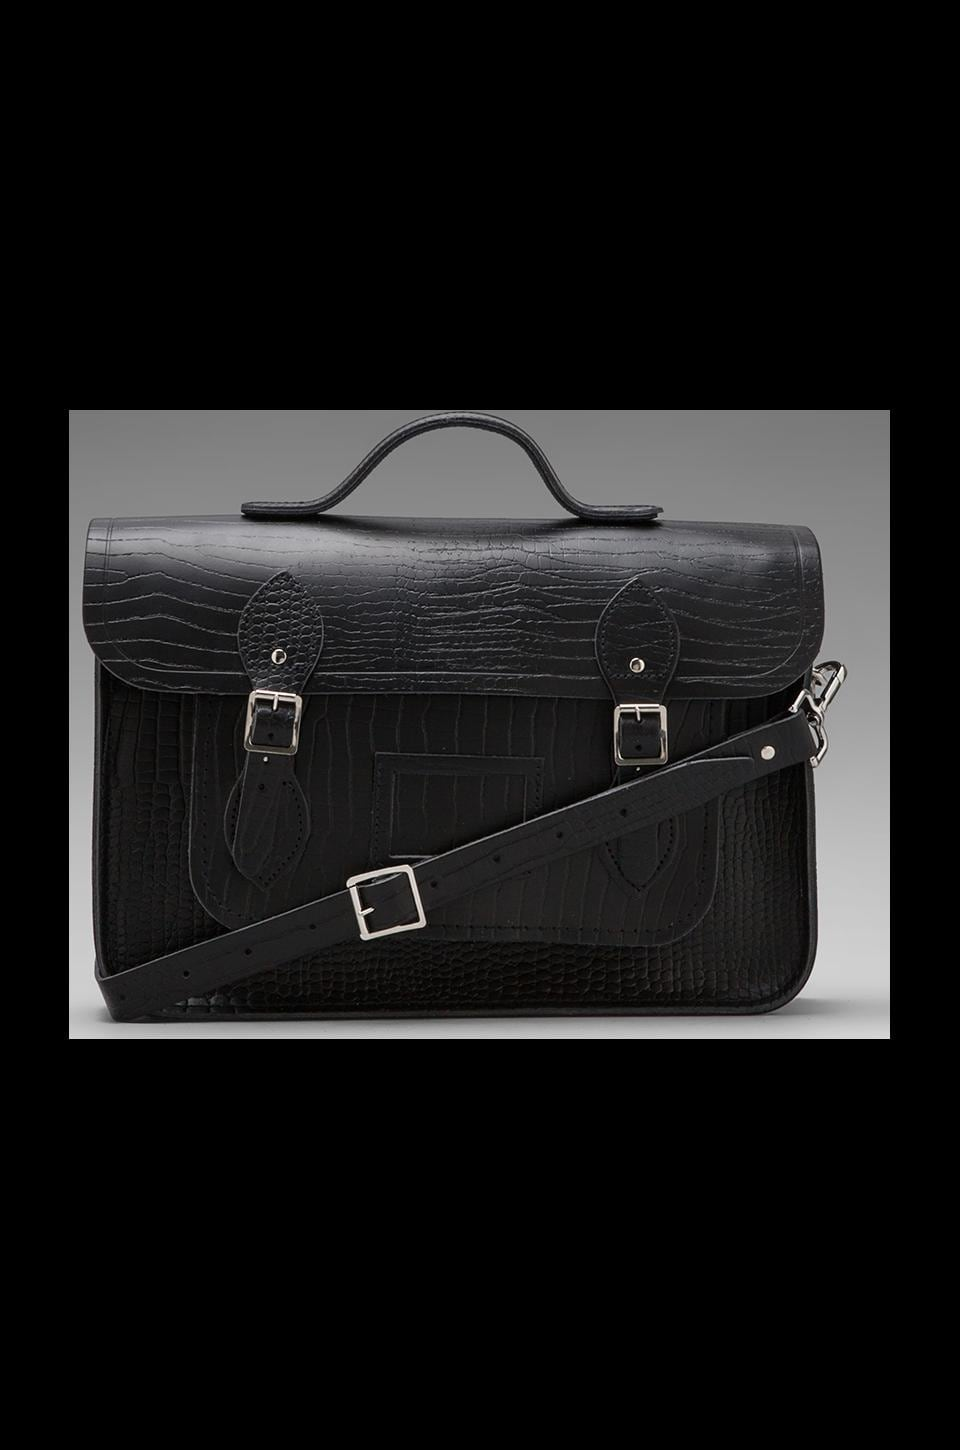 The Cambridge Satchel Company Embossed Stamp Satchel in Black